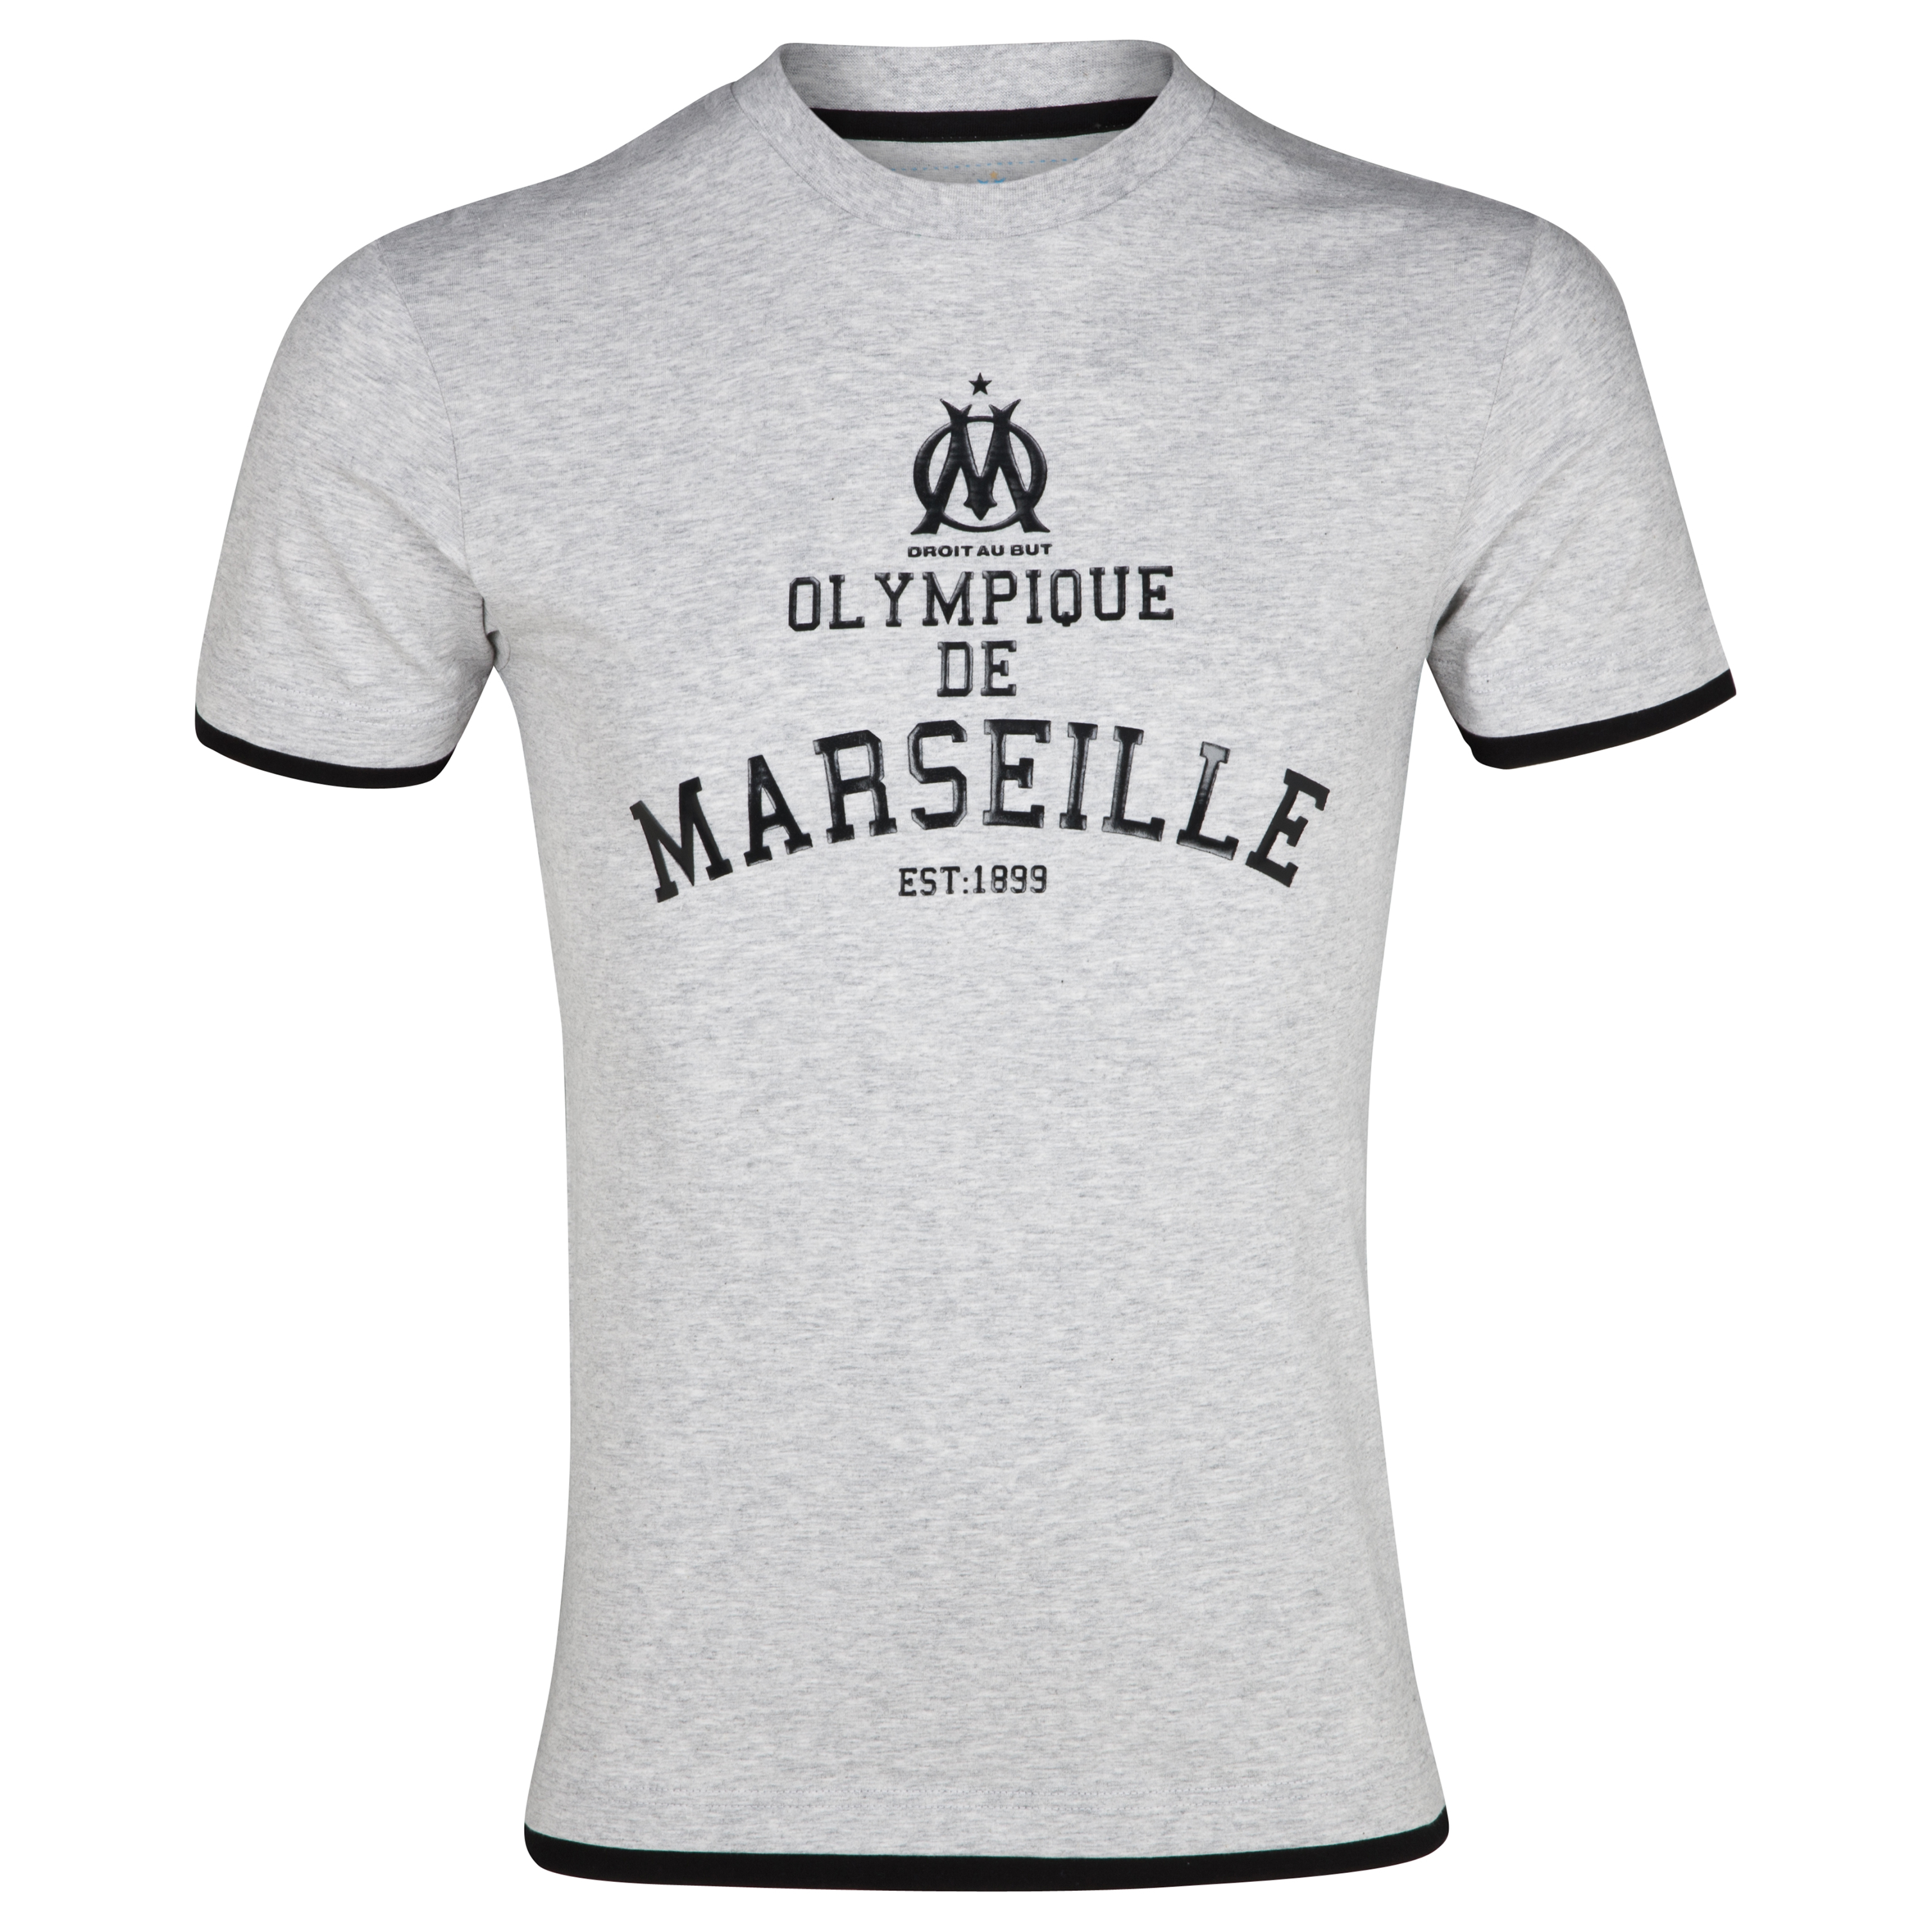 Olympique de Marseille Athletic Club Crew Neck Tee - Grey